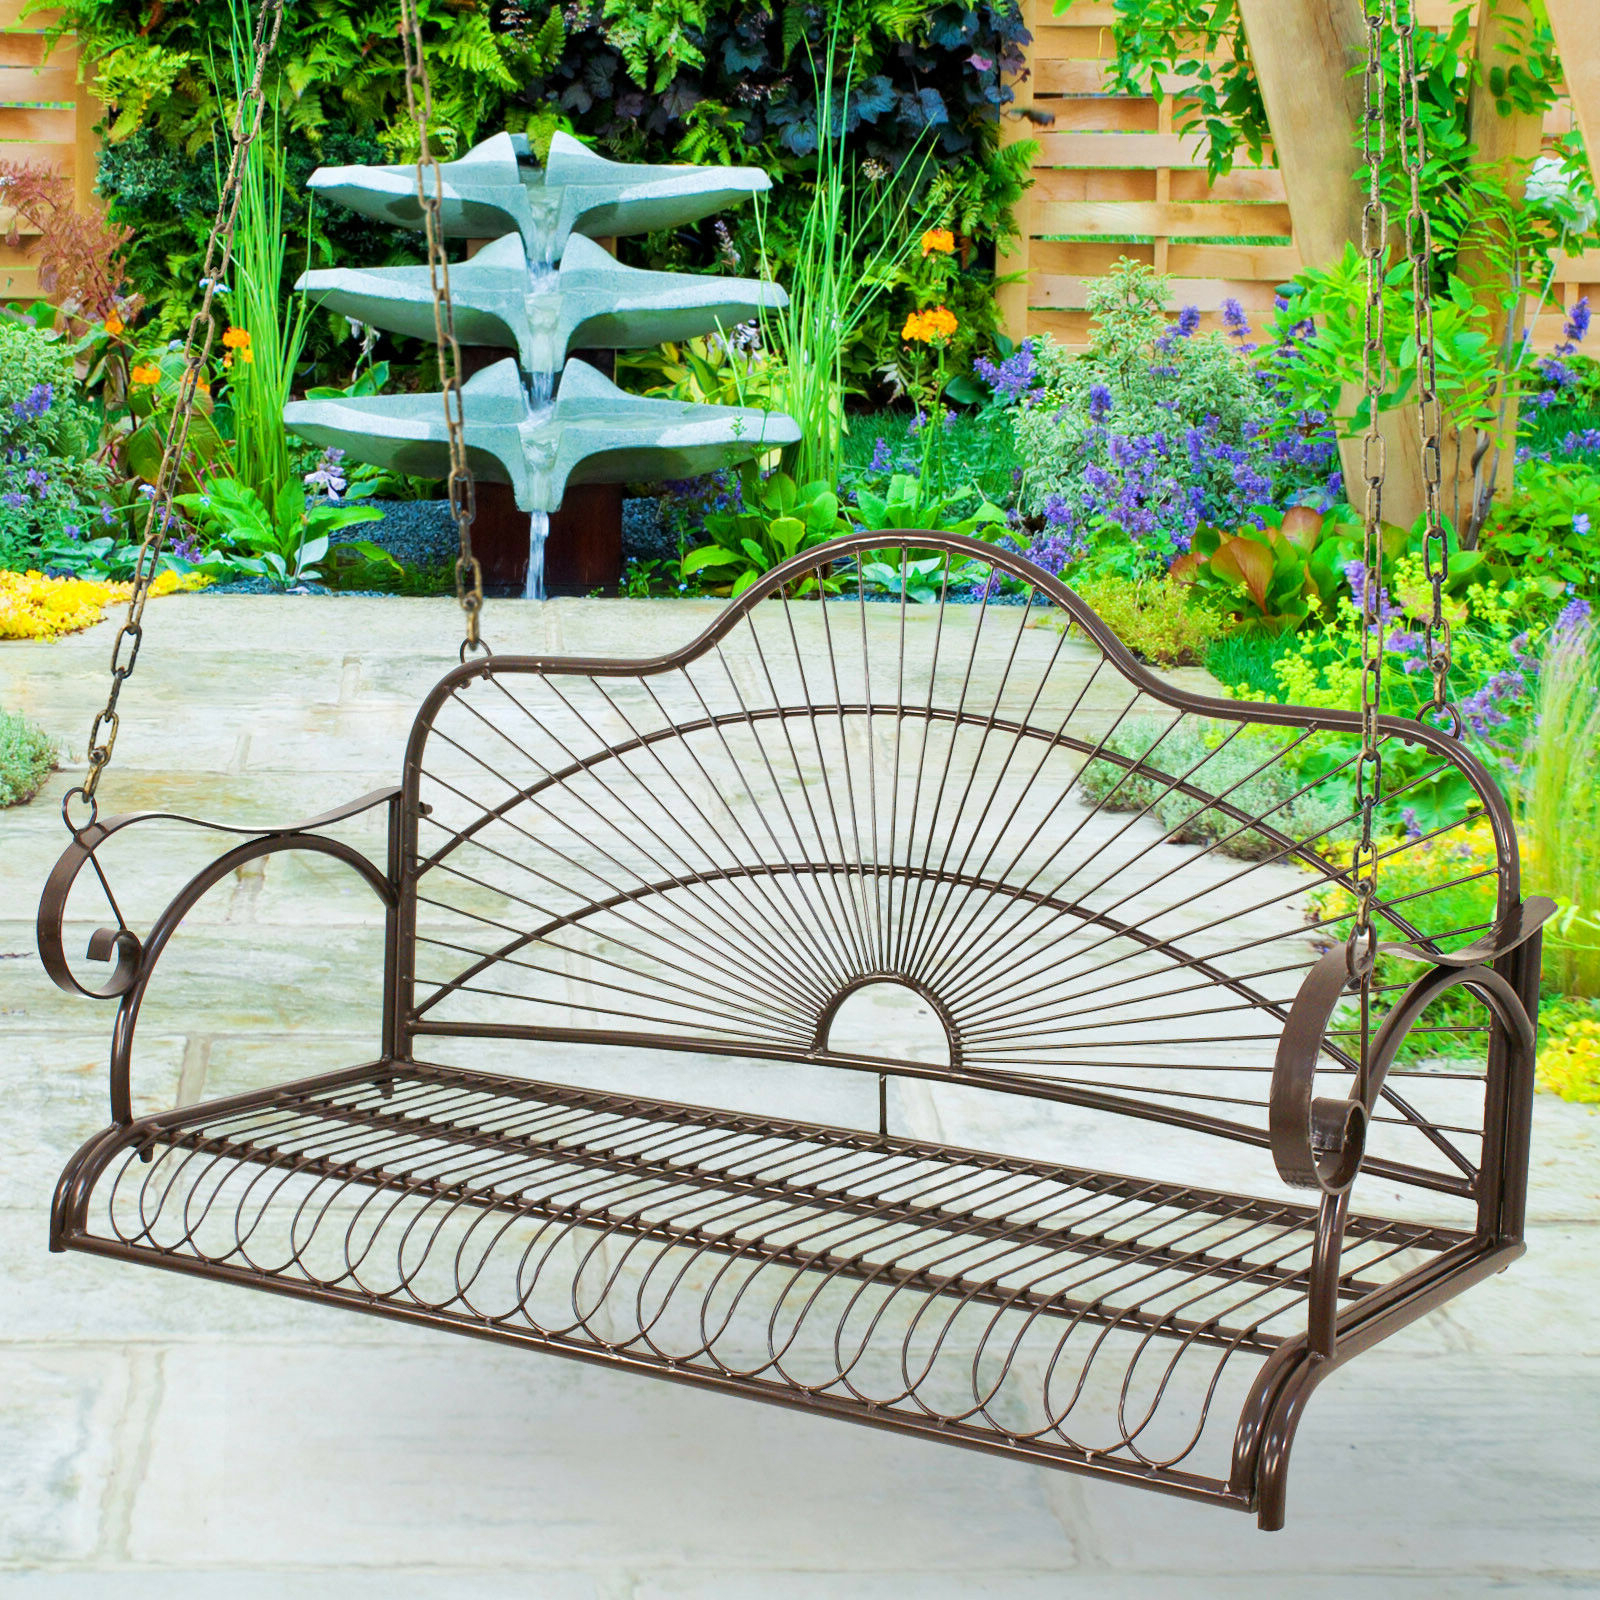 Most Recent Hanging Iron Metal Porch Swing Chair Bench Backyard Garden For 2 Person Gray Steel Outdoor Swings (View 25 of 30)